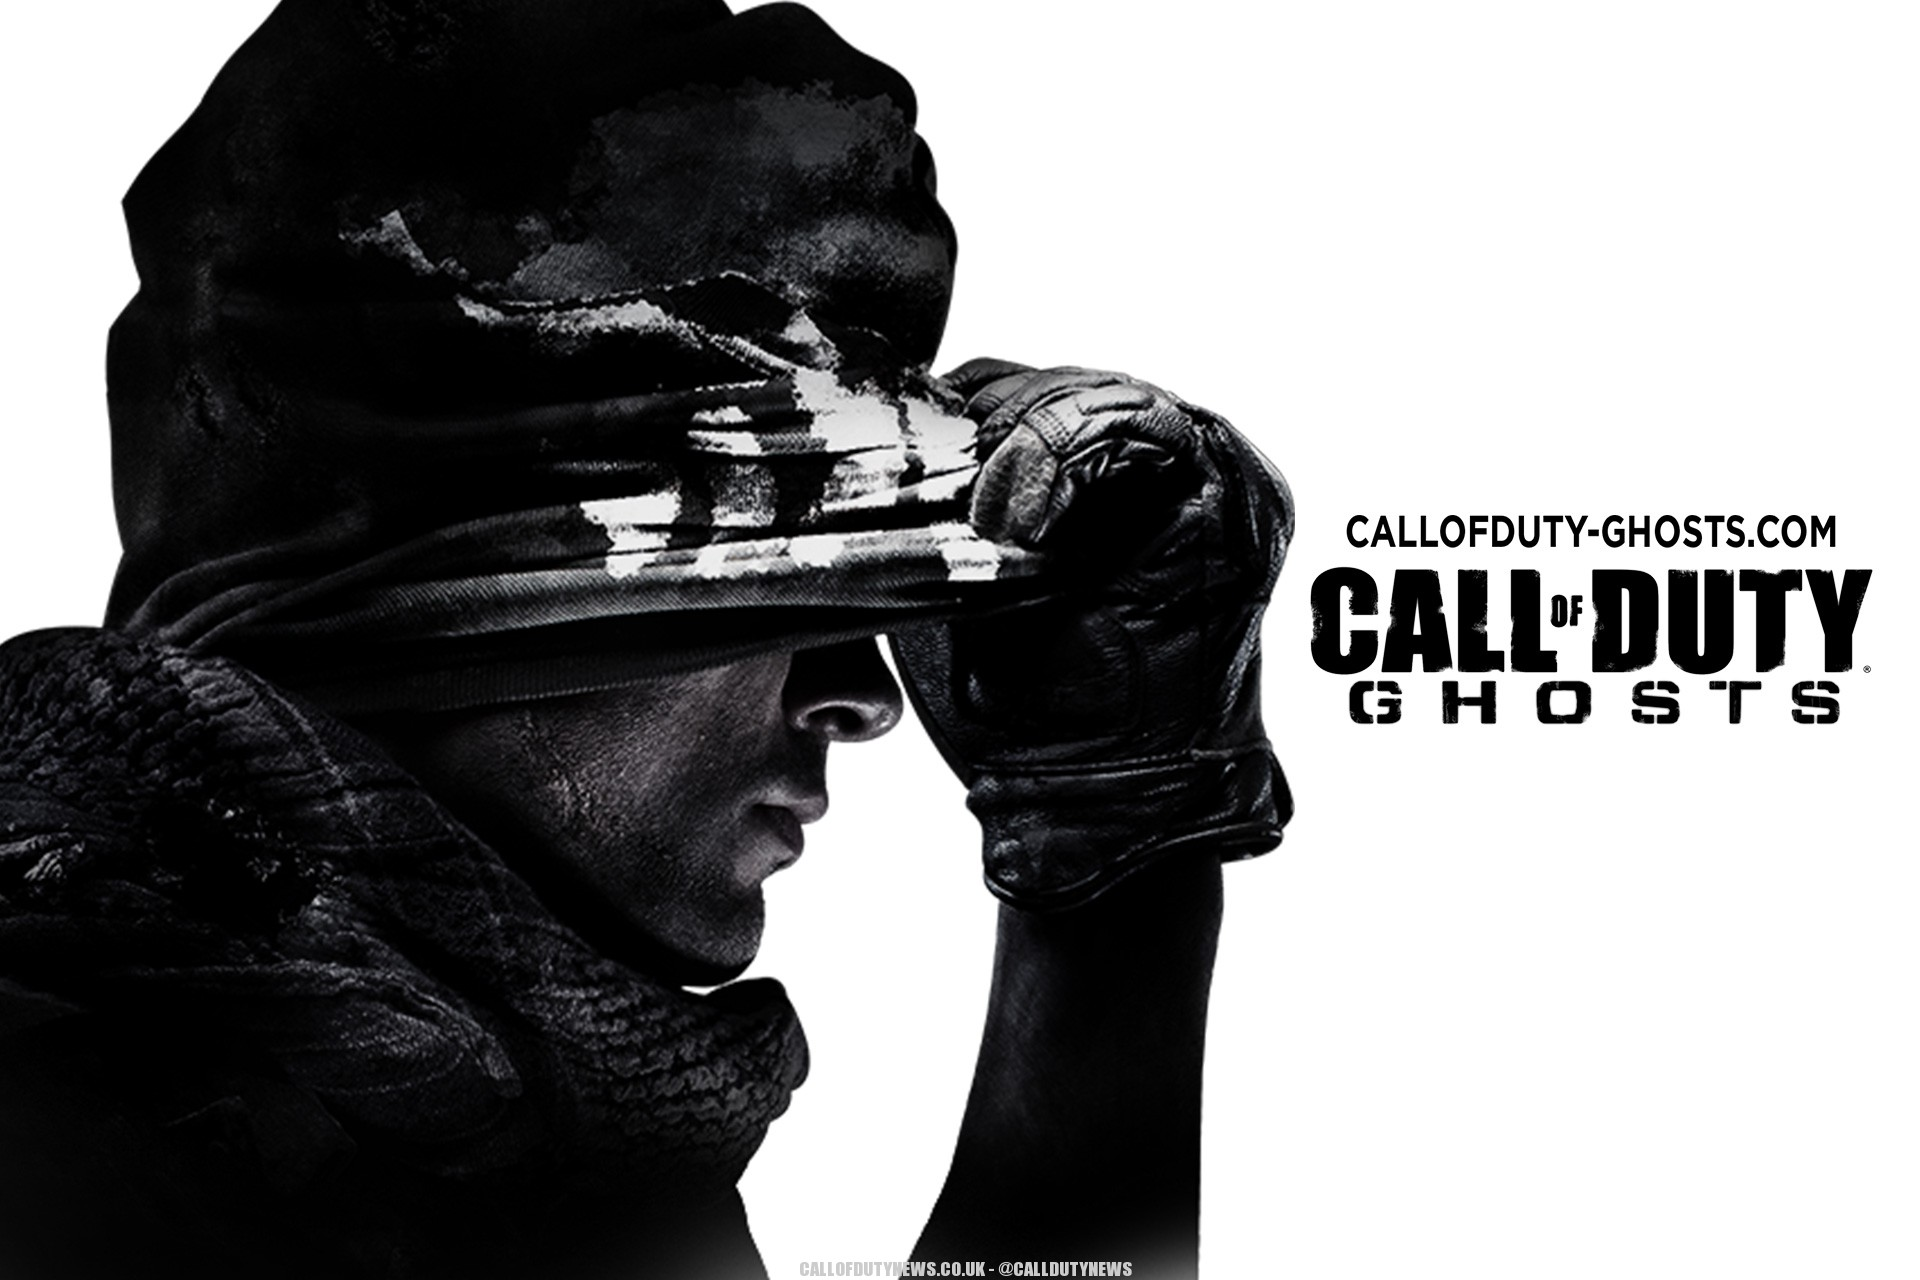 Cod Call Of Duty Ghosts Wallpaper 13 Destroyrepeat Destroy Repeat